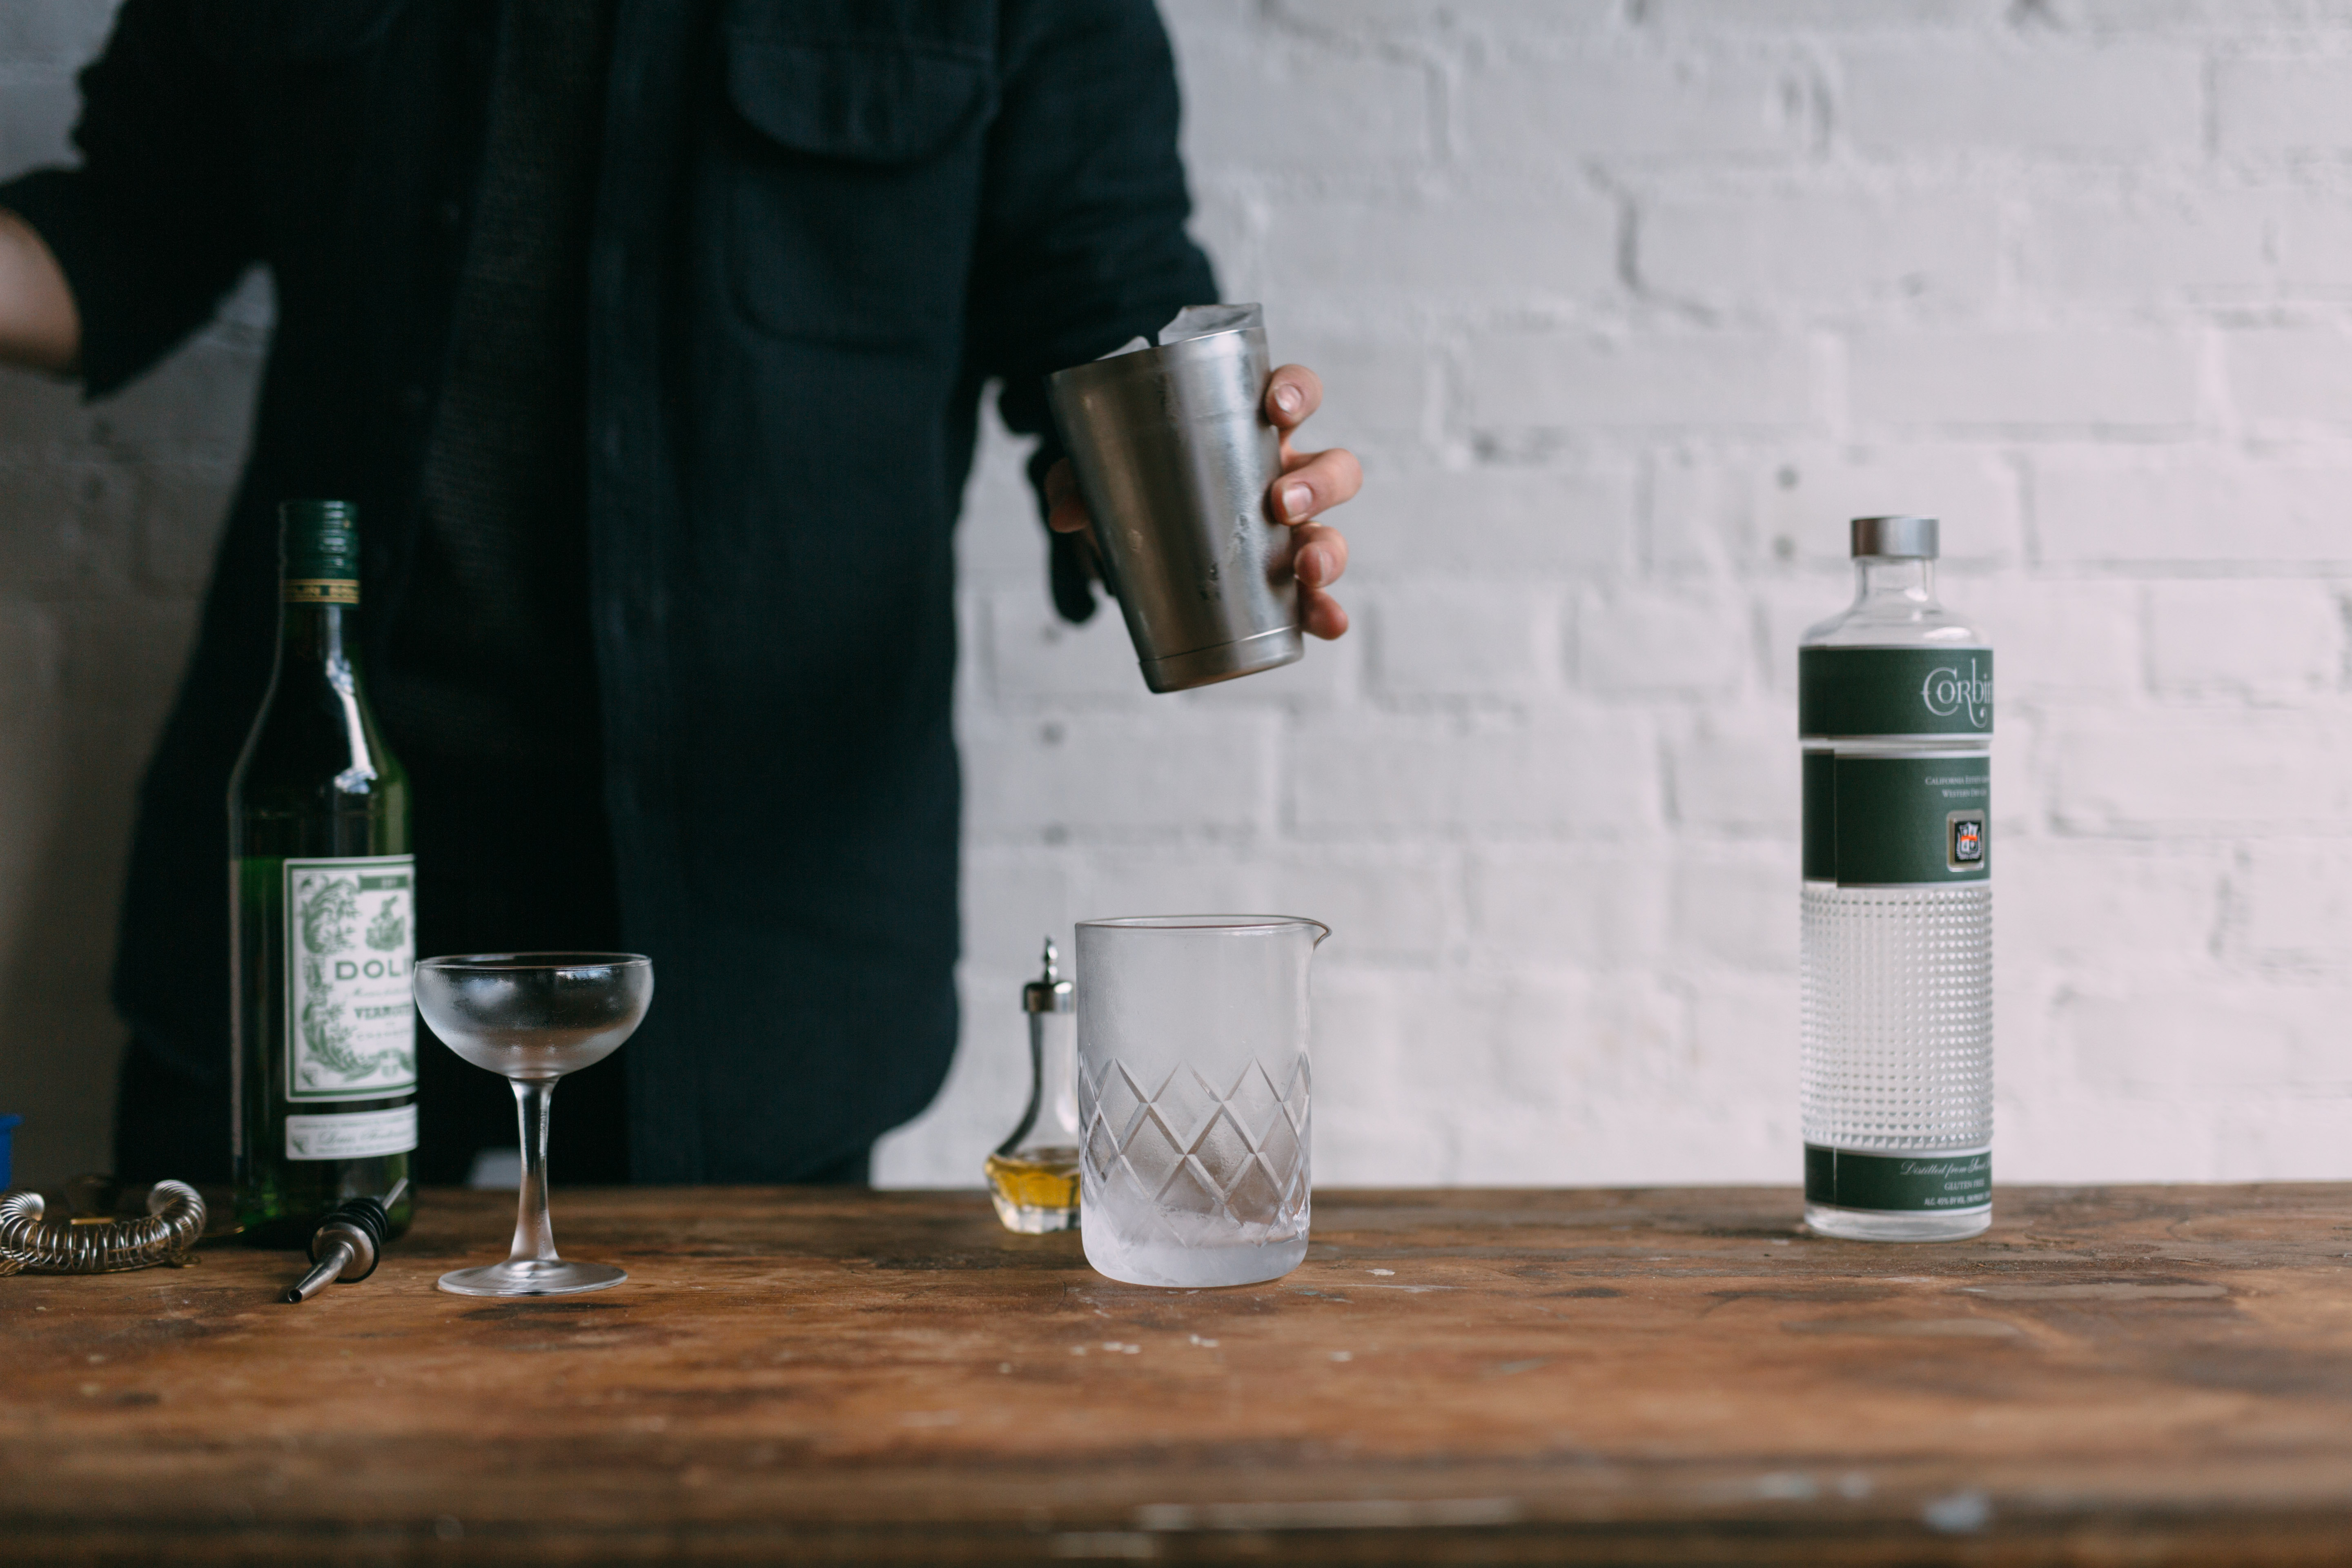 Dolin Dry Vermouth, Martini Glass, Bitters Bottle, Jigger, Corbin Gin, in a shaker